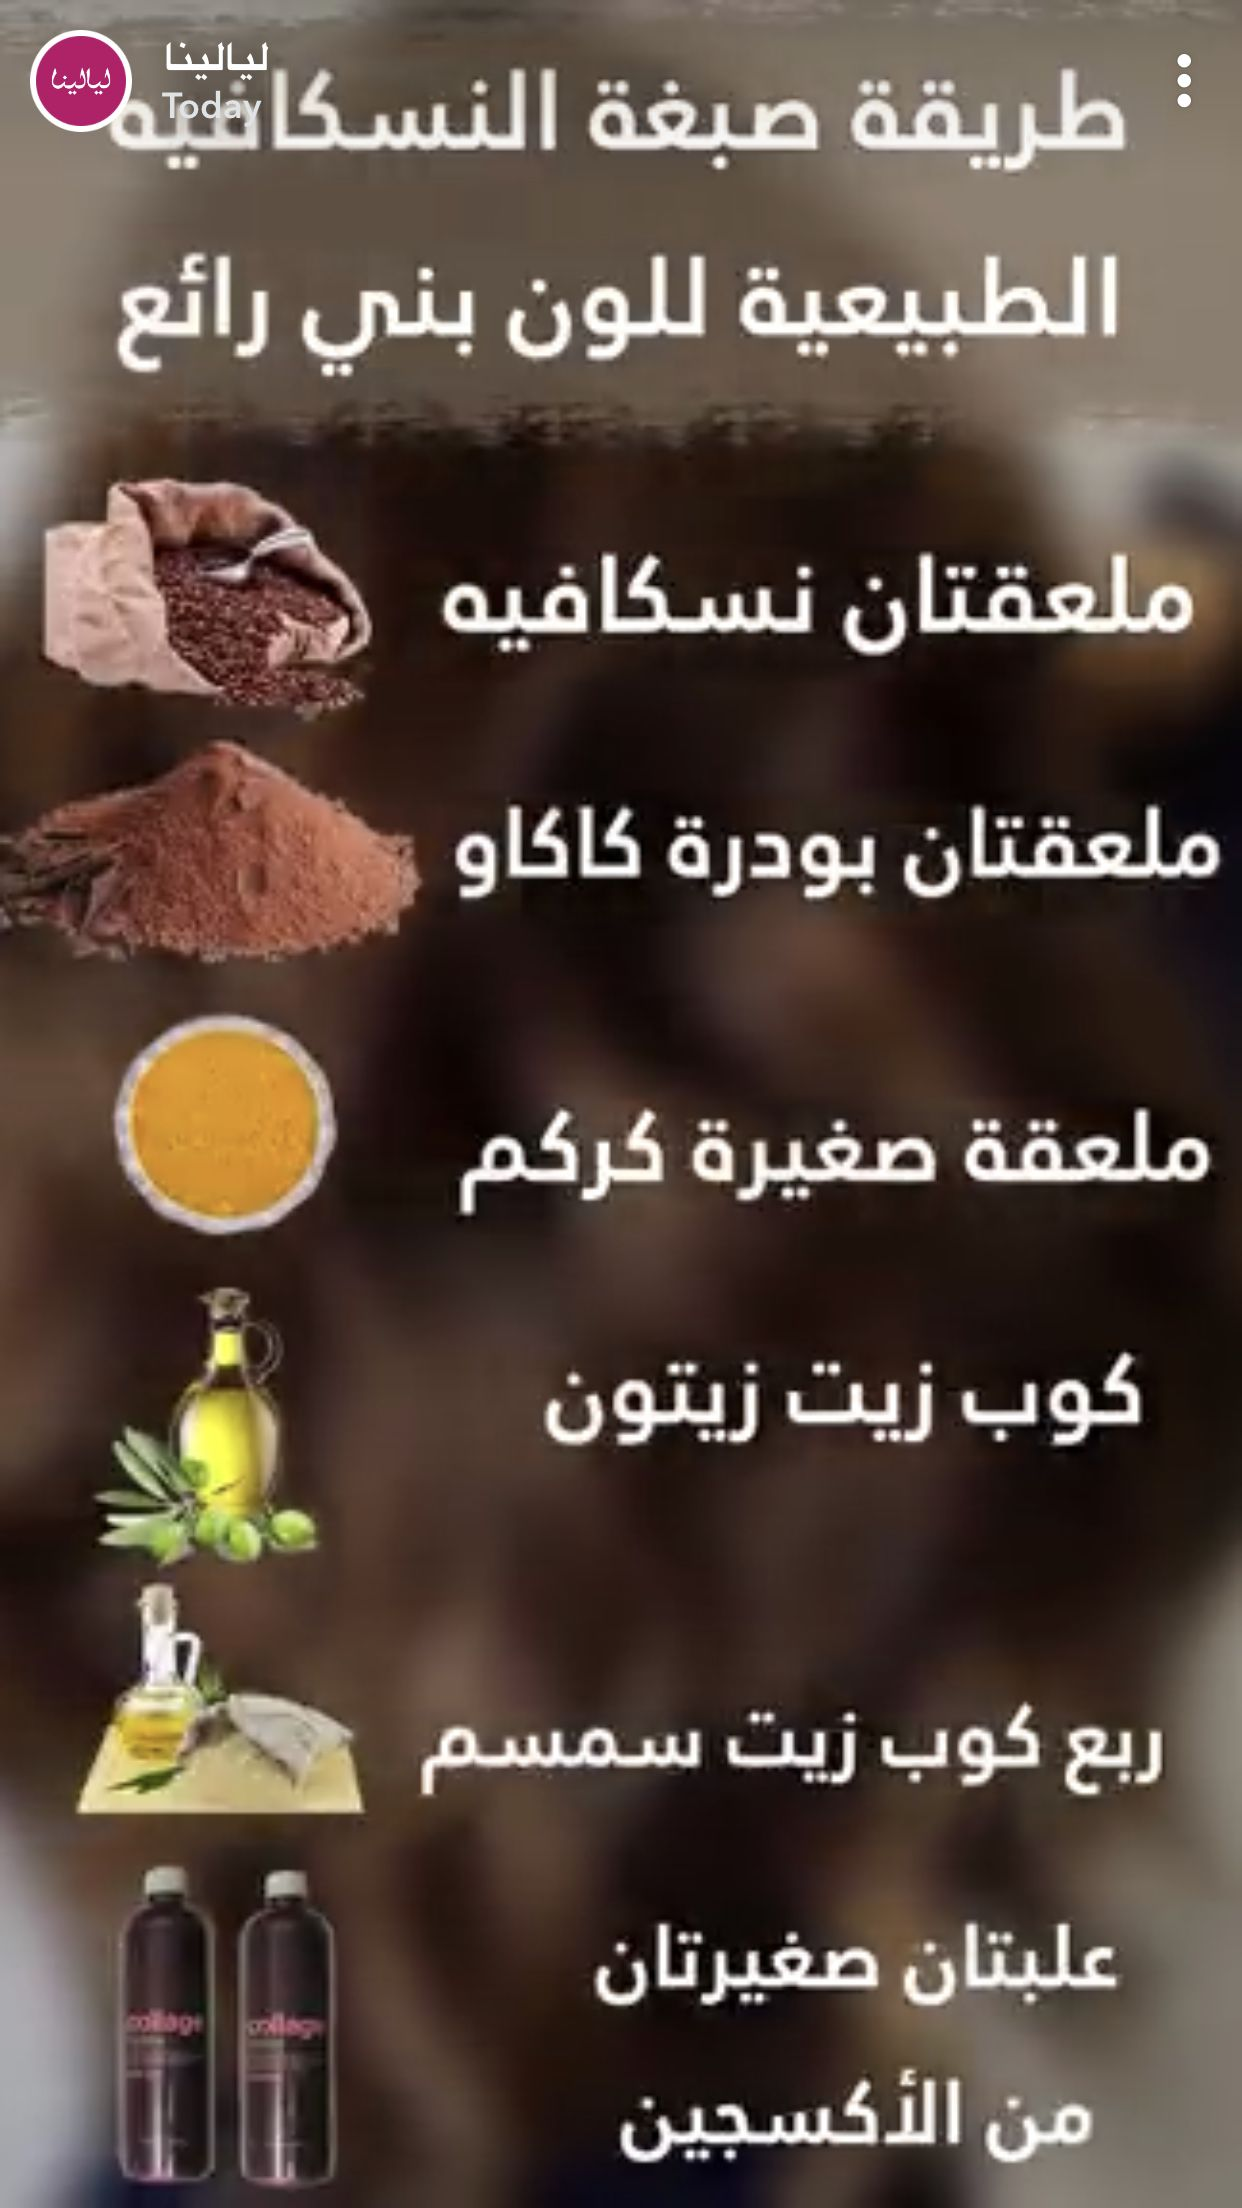 Pin By Mshmsh On عناية وأهتمام Diy Hair Treatment Beauty Recipes Hair Healty Hair